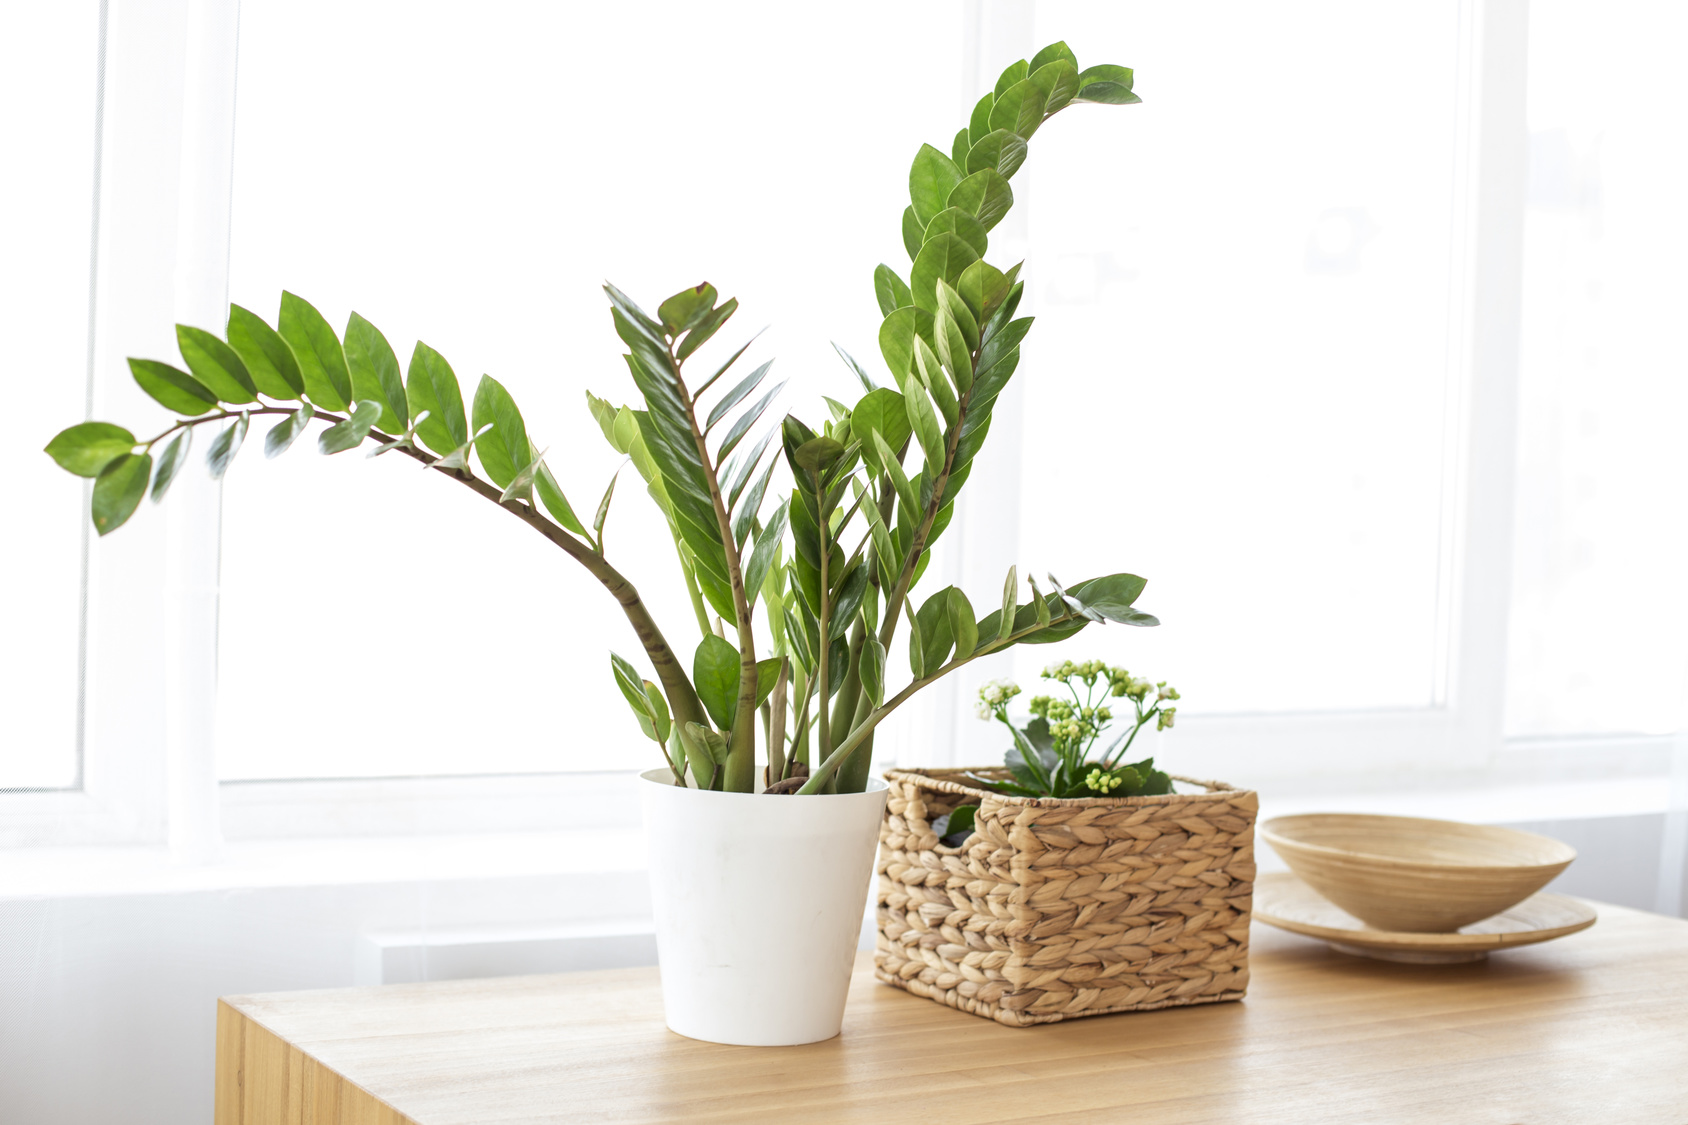 Modern clean interior with plant